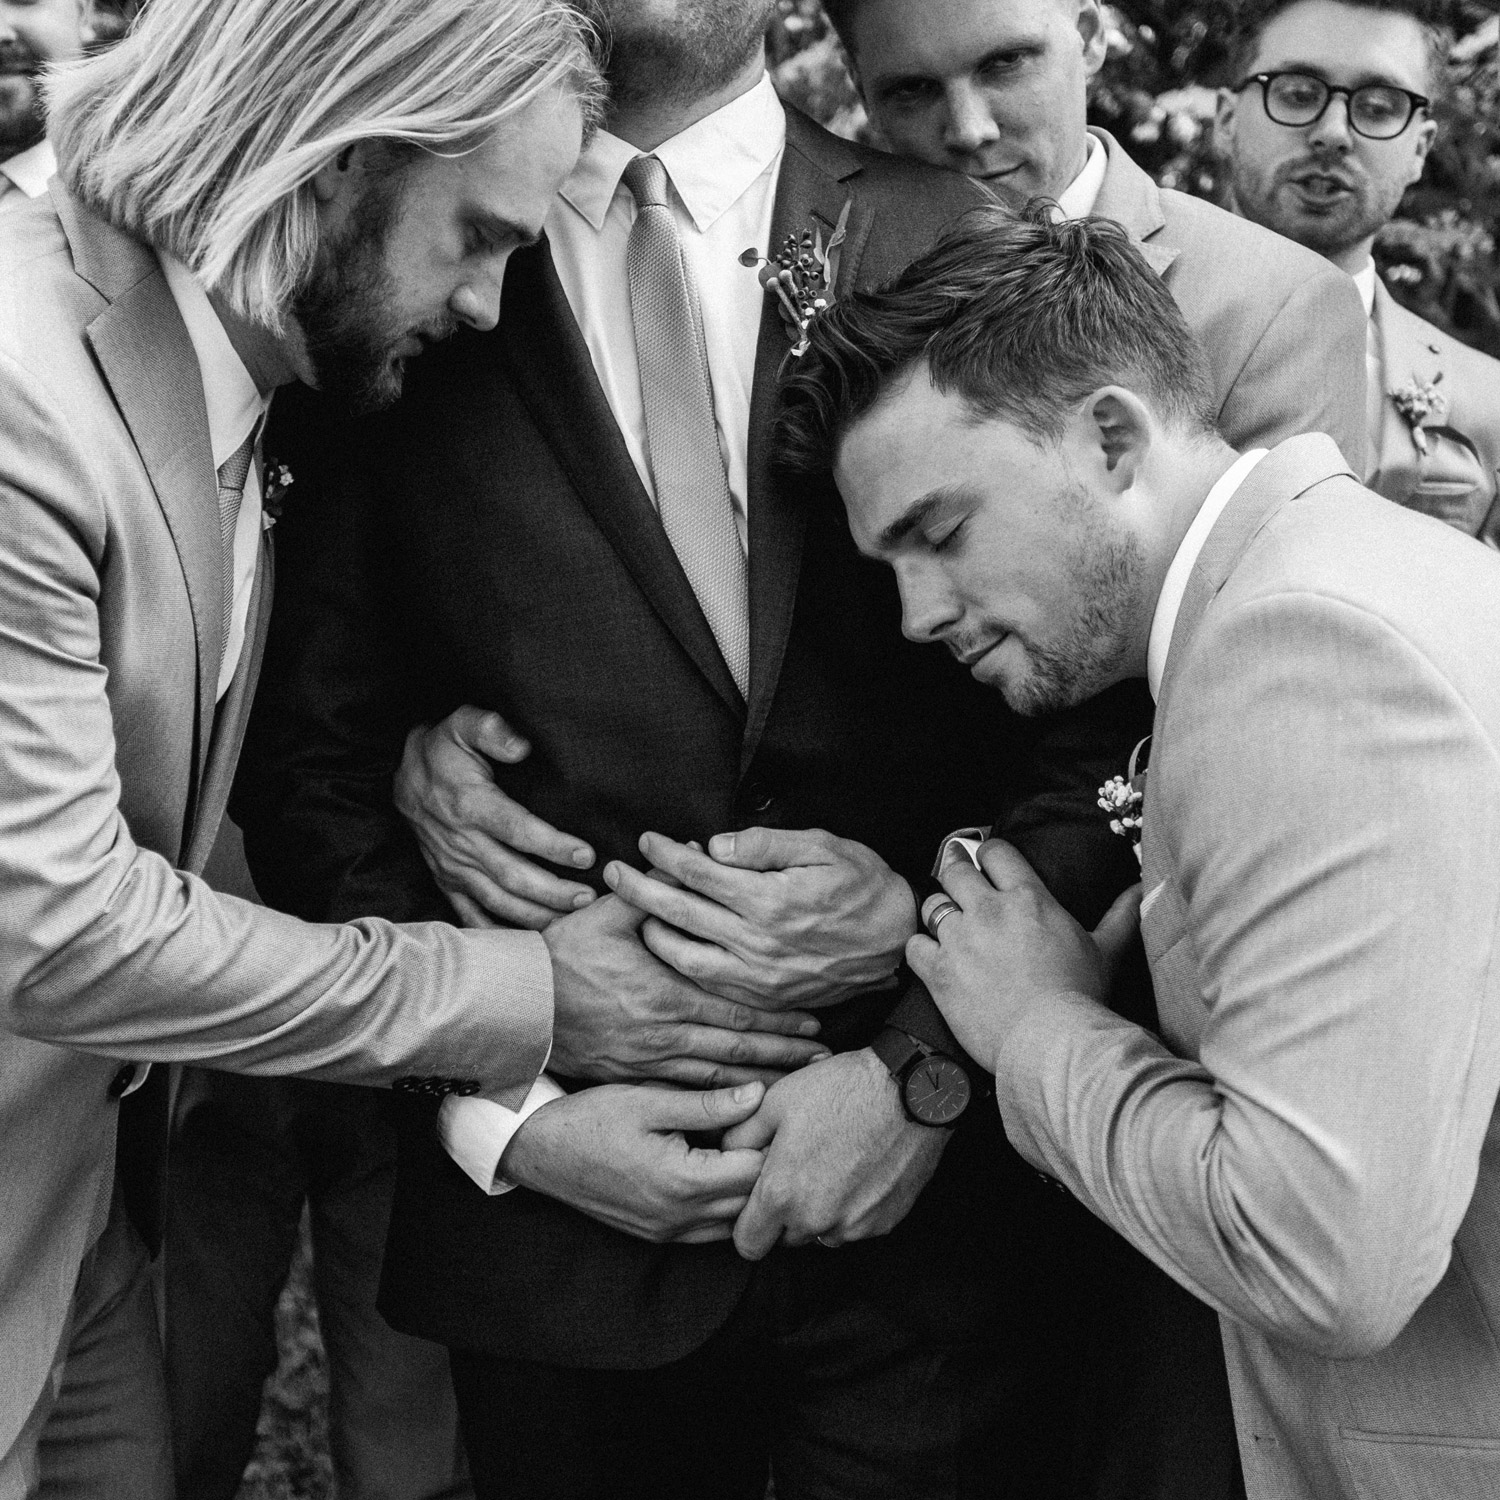 candid moment of groomsmen by geneoh